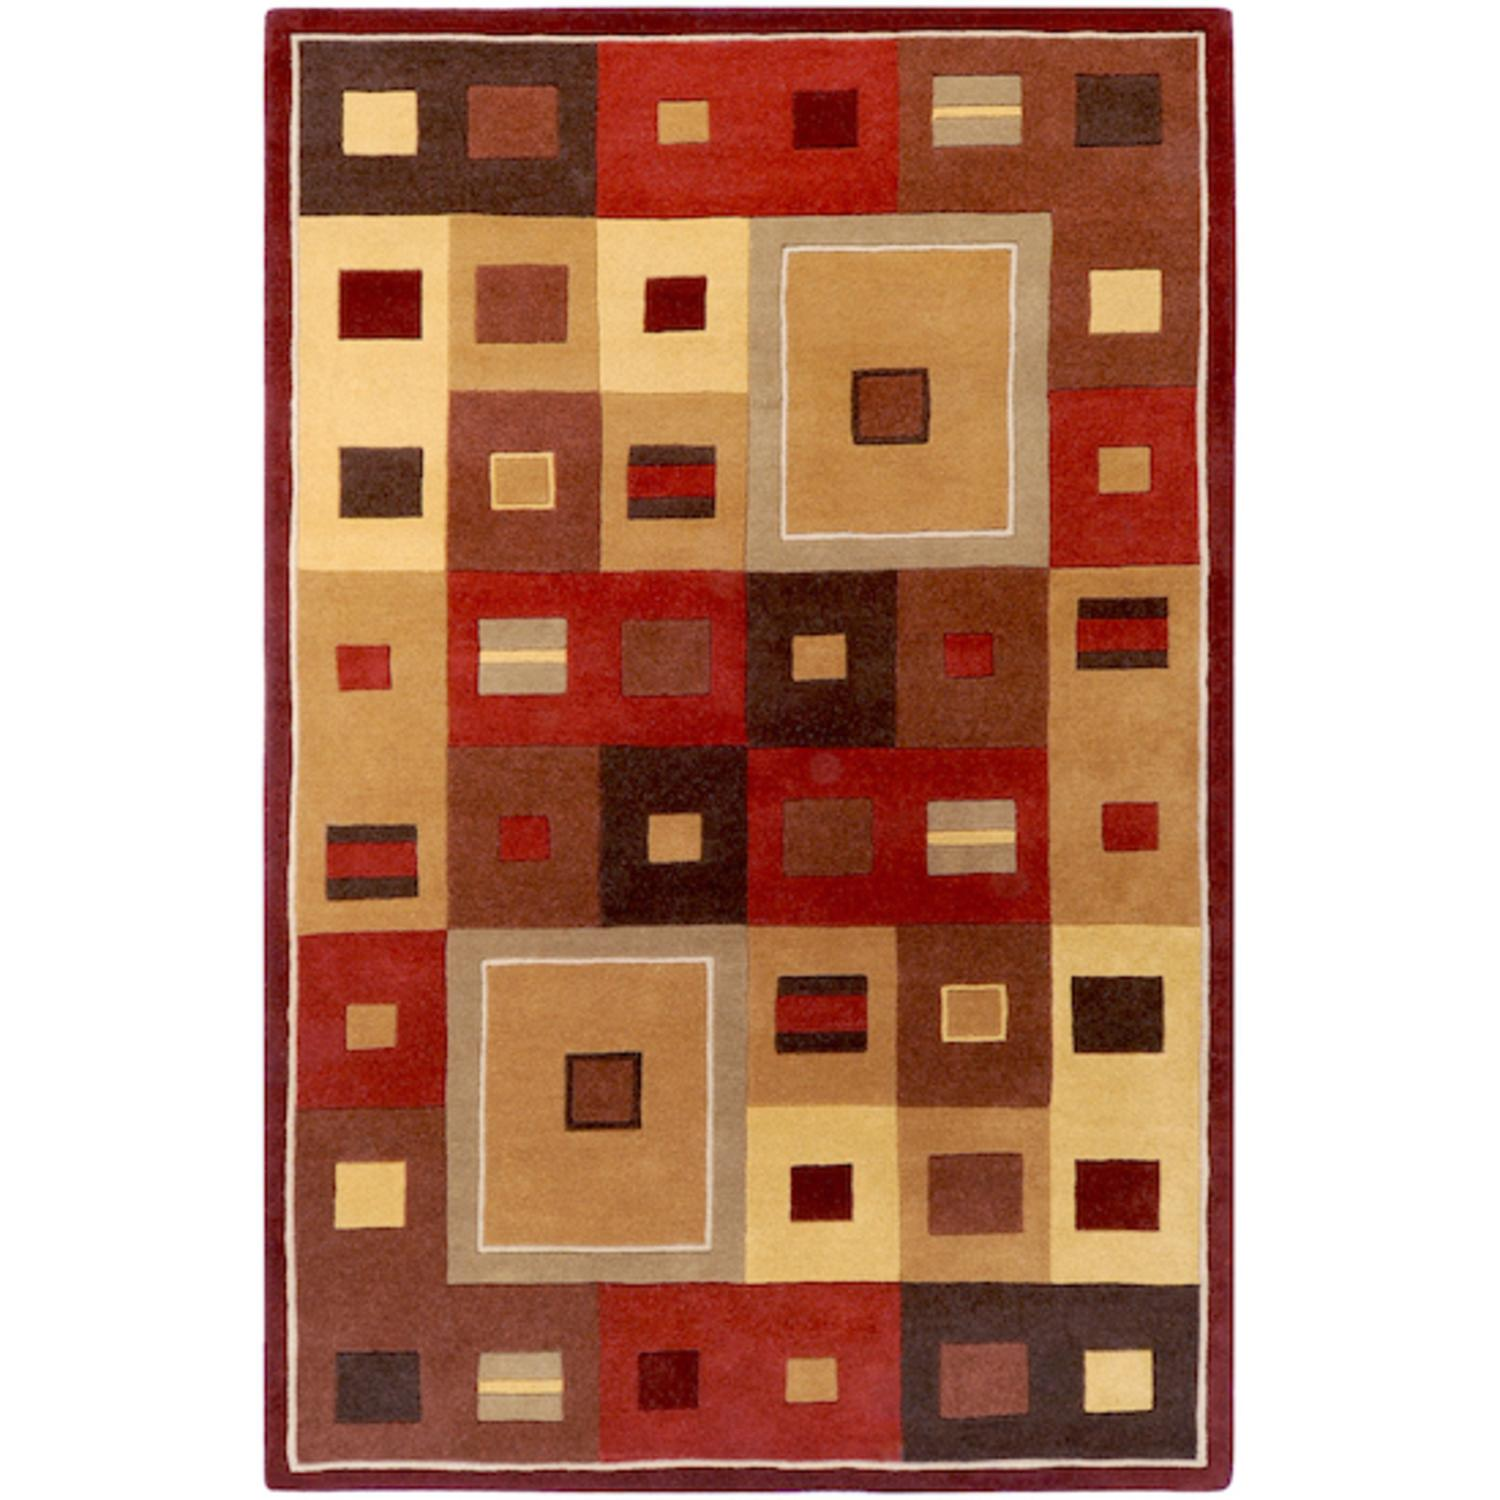 6' x 9' Kadmos Frames Sienna Red and Golden Brown Wool Area Throw Rug